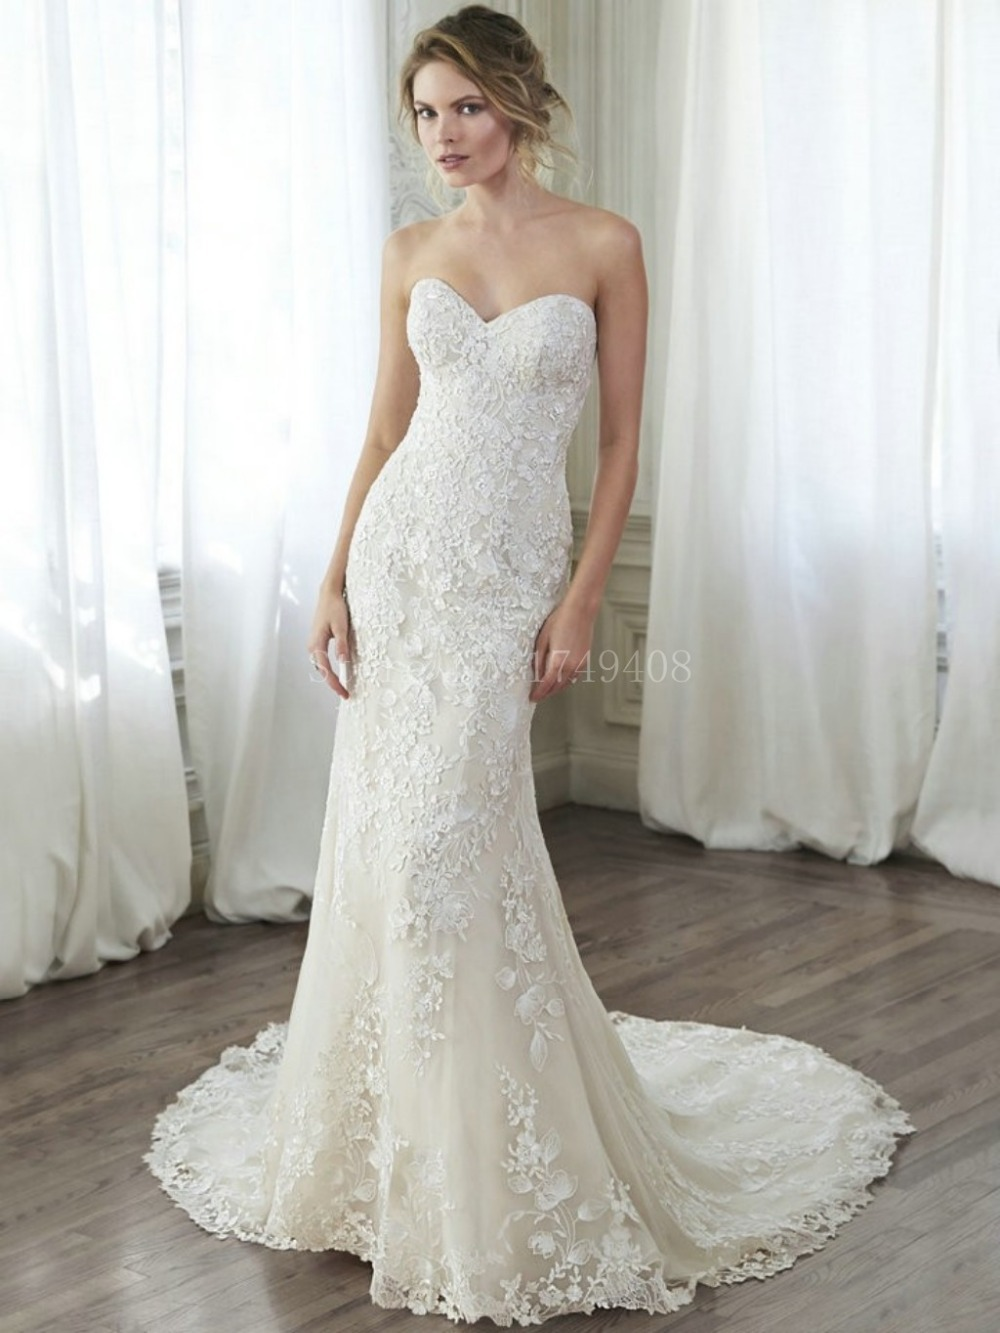 Hot selling vintage lace sheath wedding dress 2015 sexy for Selling your wedding dress